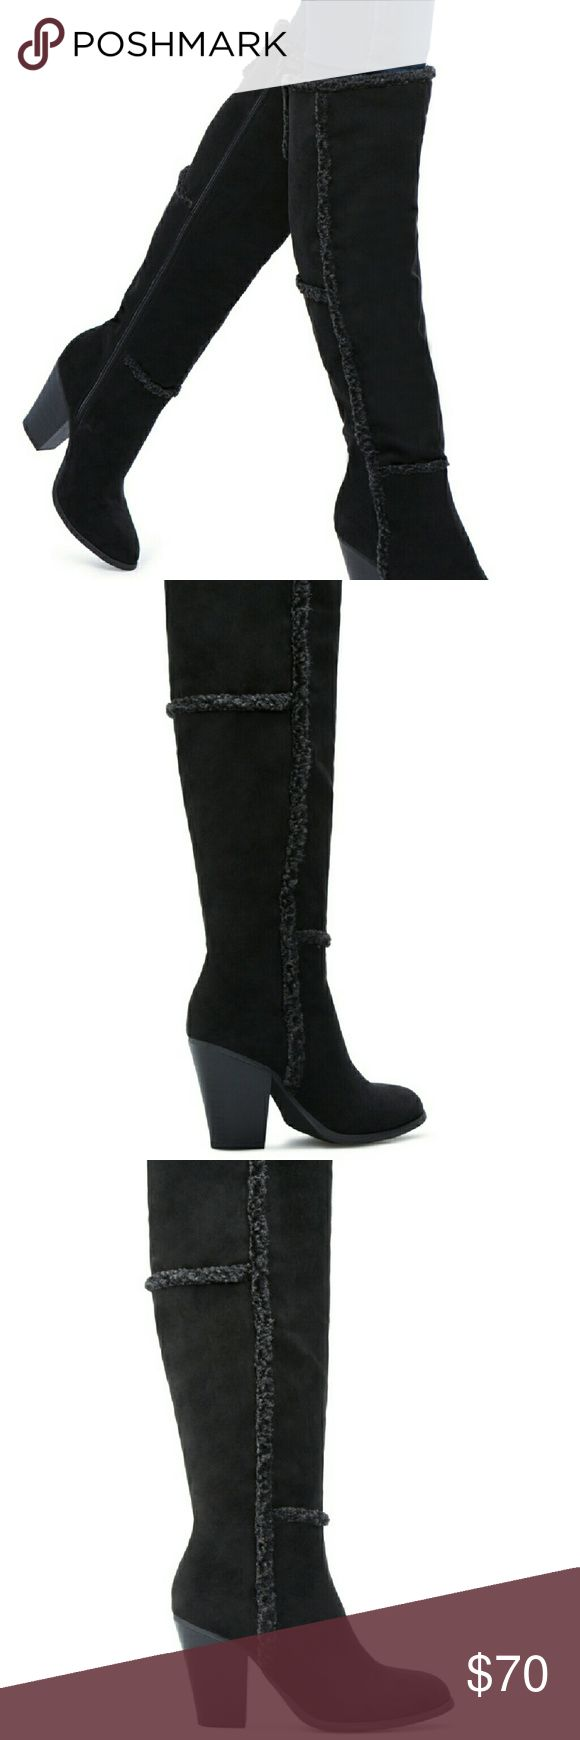 """Brand New Boots These are also packed in the box, i never took them out. Its made of Faux-suede -shearling.  The heel is 3.5"""" tall. Calf is 14.5 inches, has front closure, inner zipp. Adorable **** Shoe Dazzle Shoes Heeled Boots"""